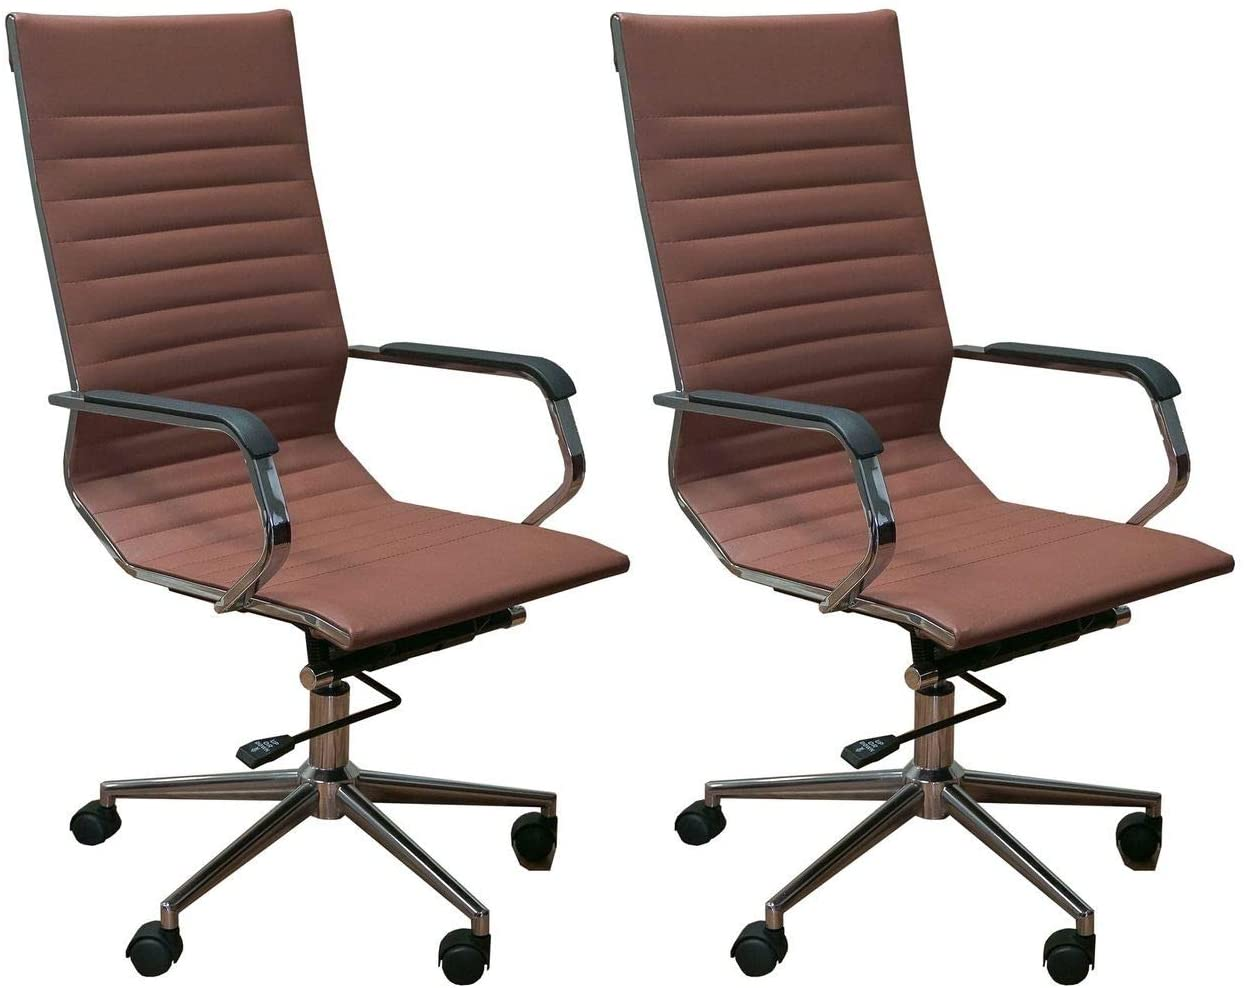 ErgoMax Set of 2 Ergonomic Height Adjustable High Back Office Chairs w/Armrests, 46.9 Inch Max, Brown